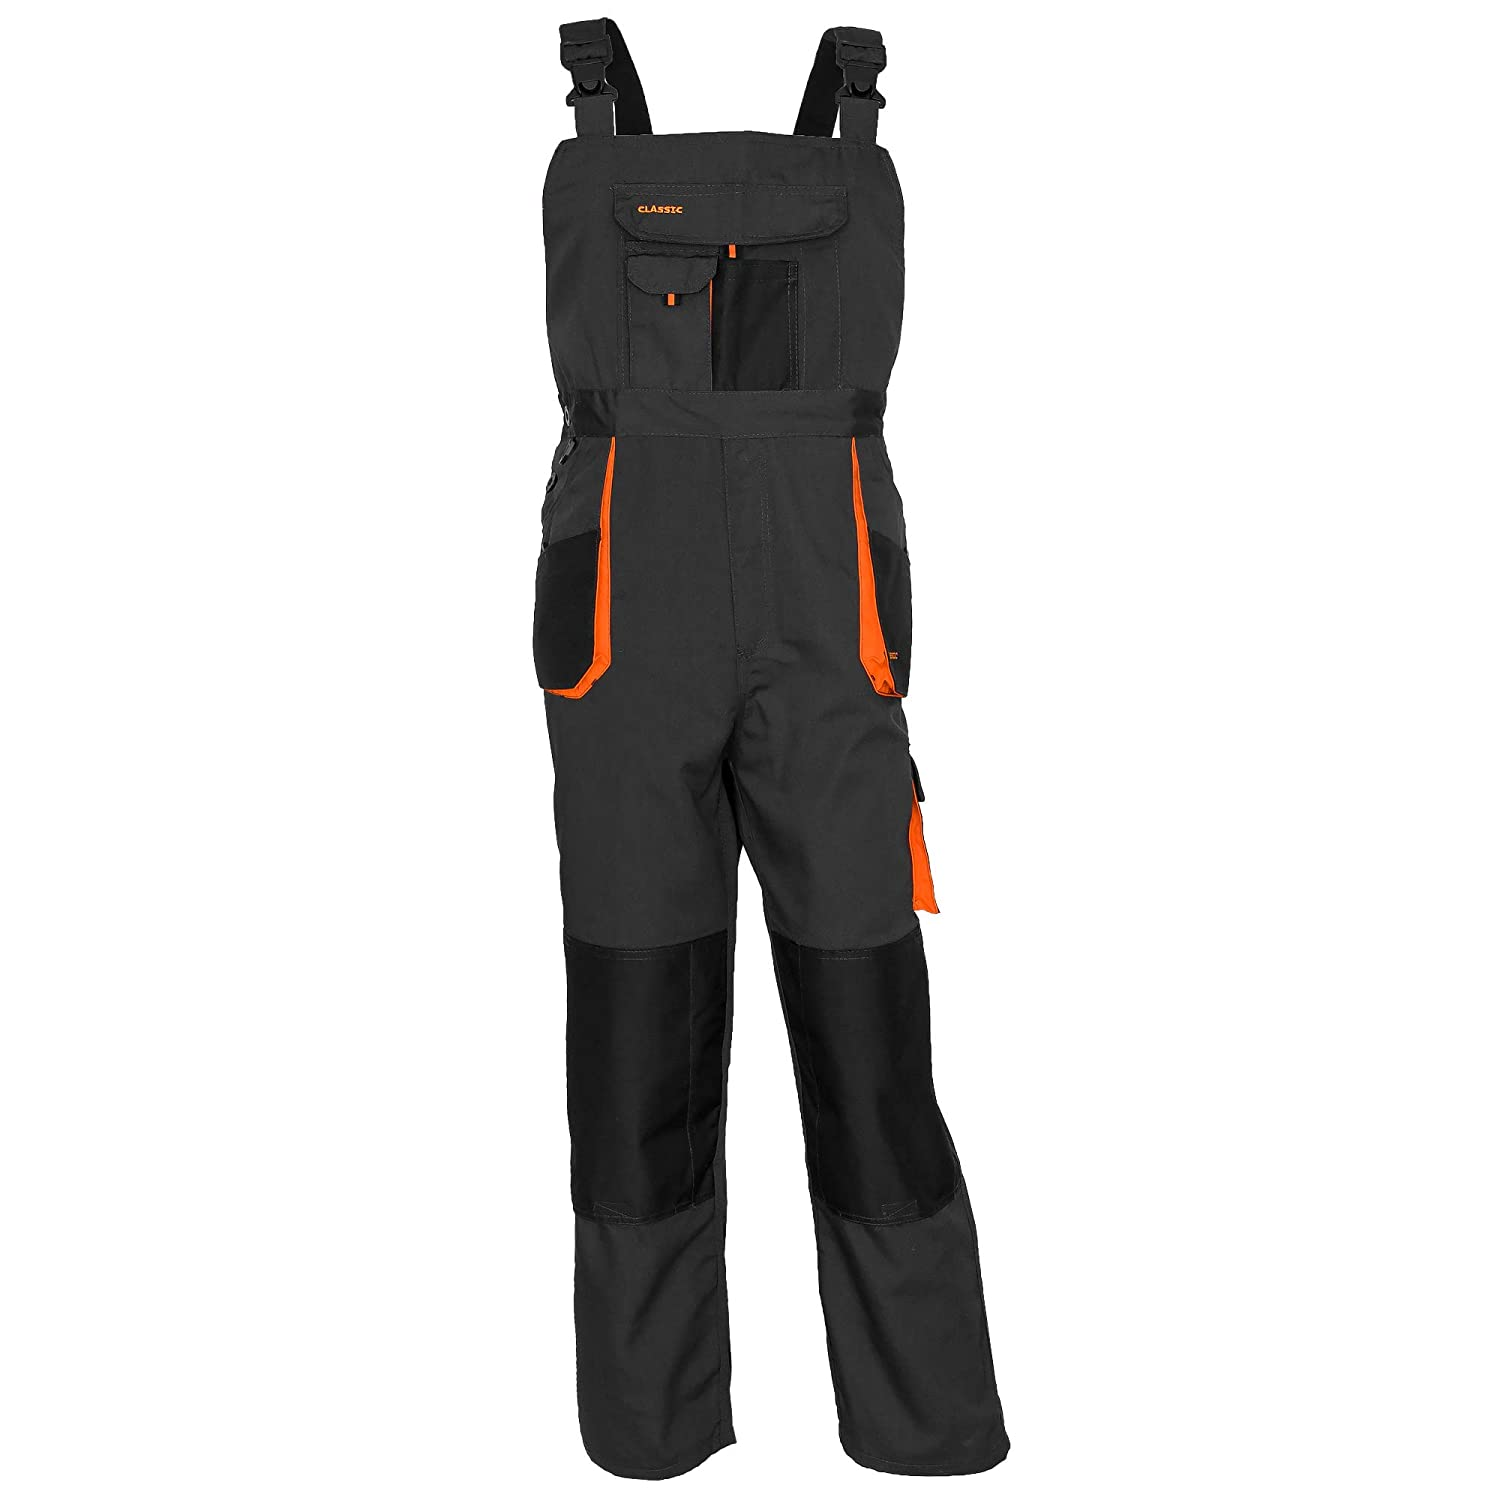 ArtMas Bib and Brace Dungaree Overalls for Man Pro Wear Workwear S-3XL Size Multipockets Durable Triple Stitched Seams Knee Reinforcement with Pocket for Knee Pad